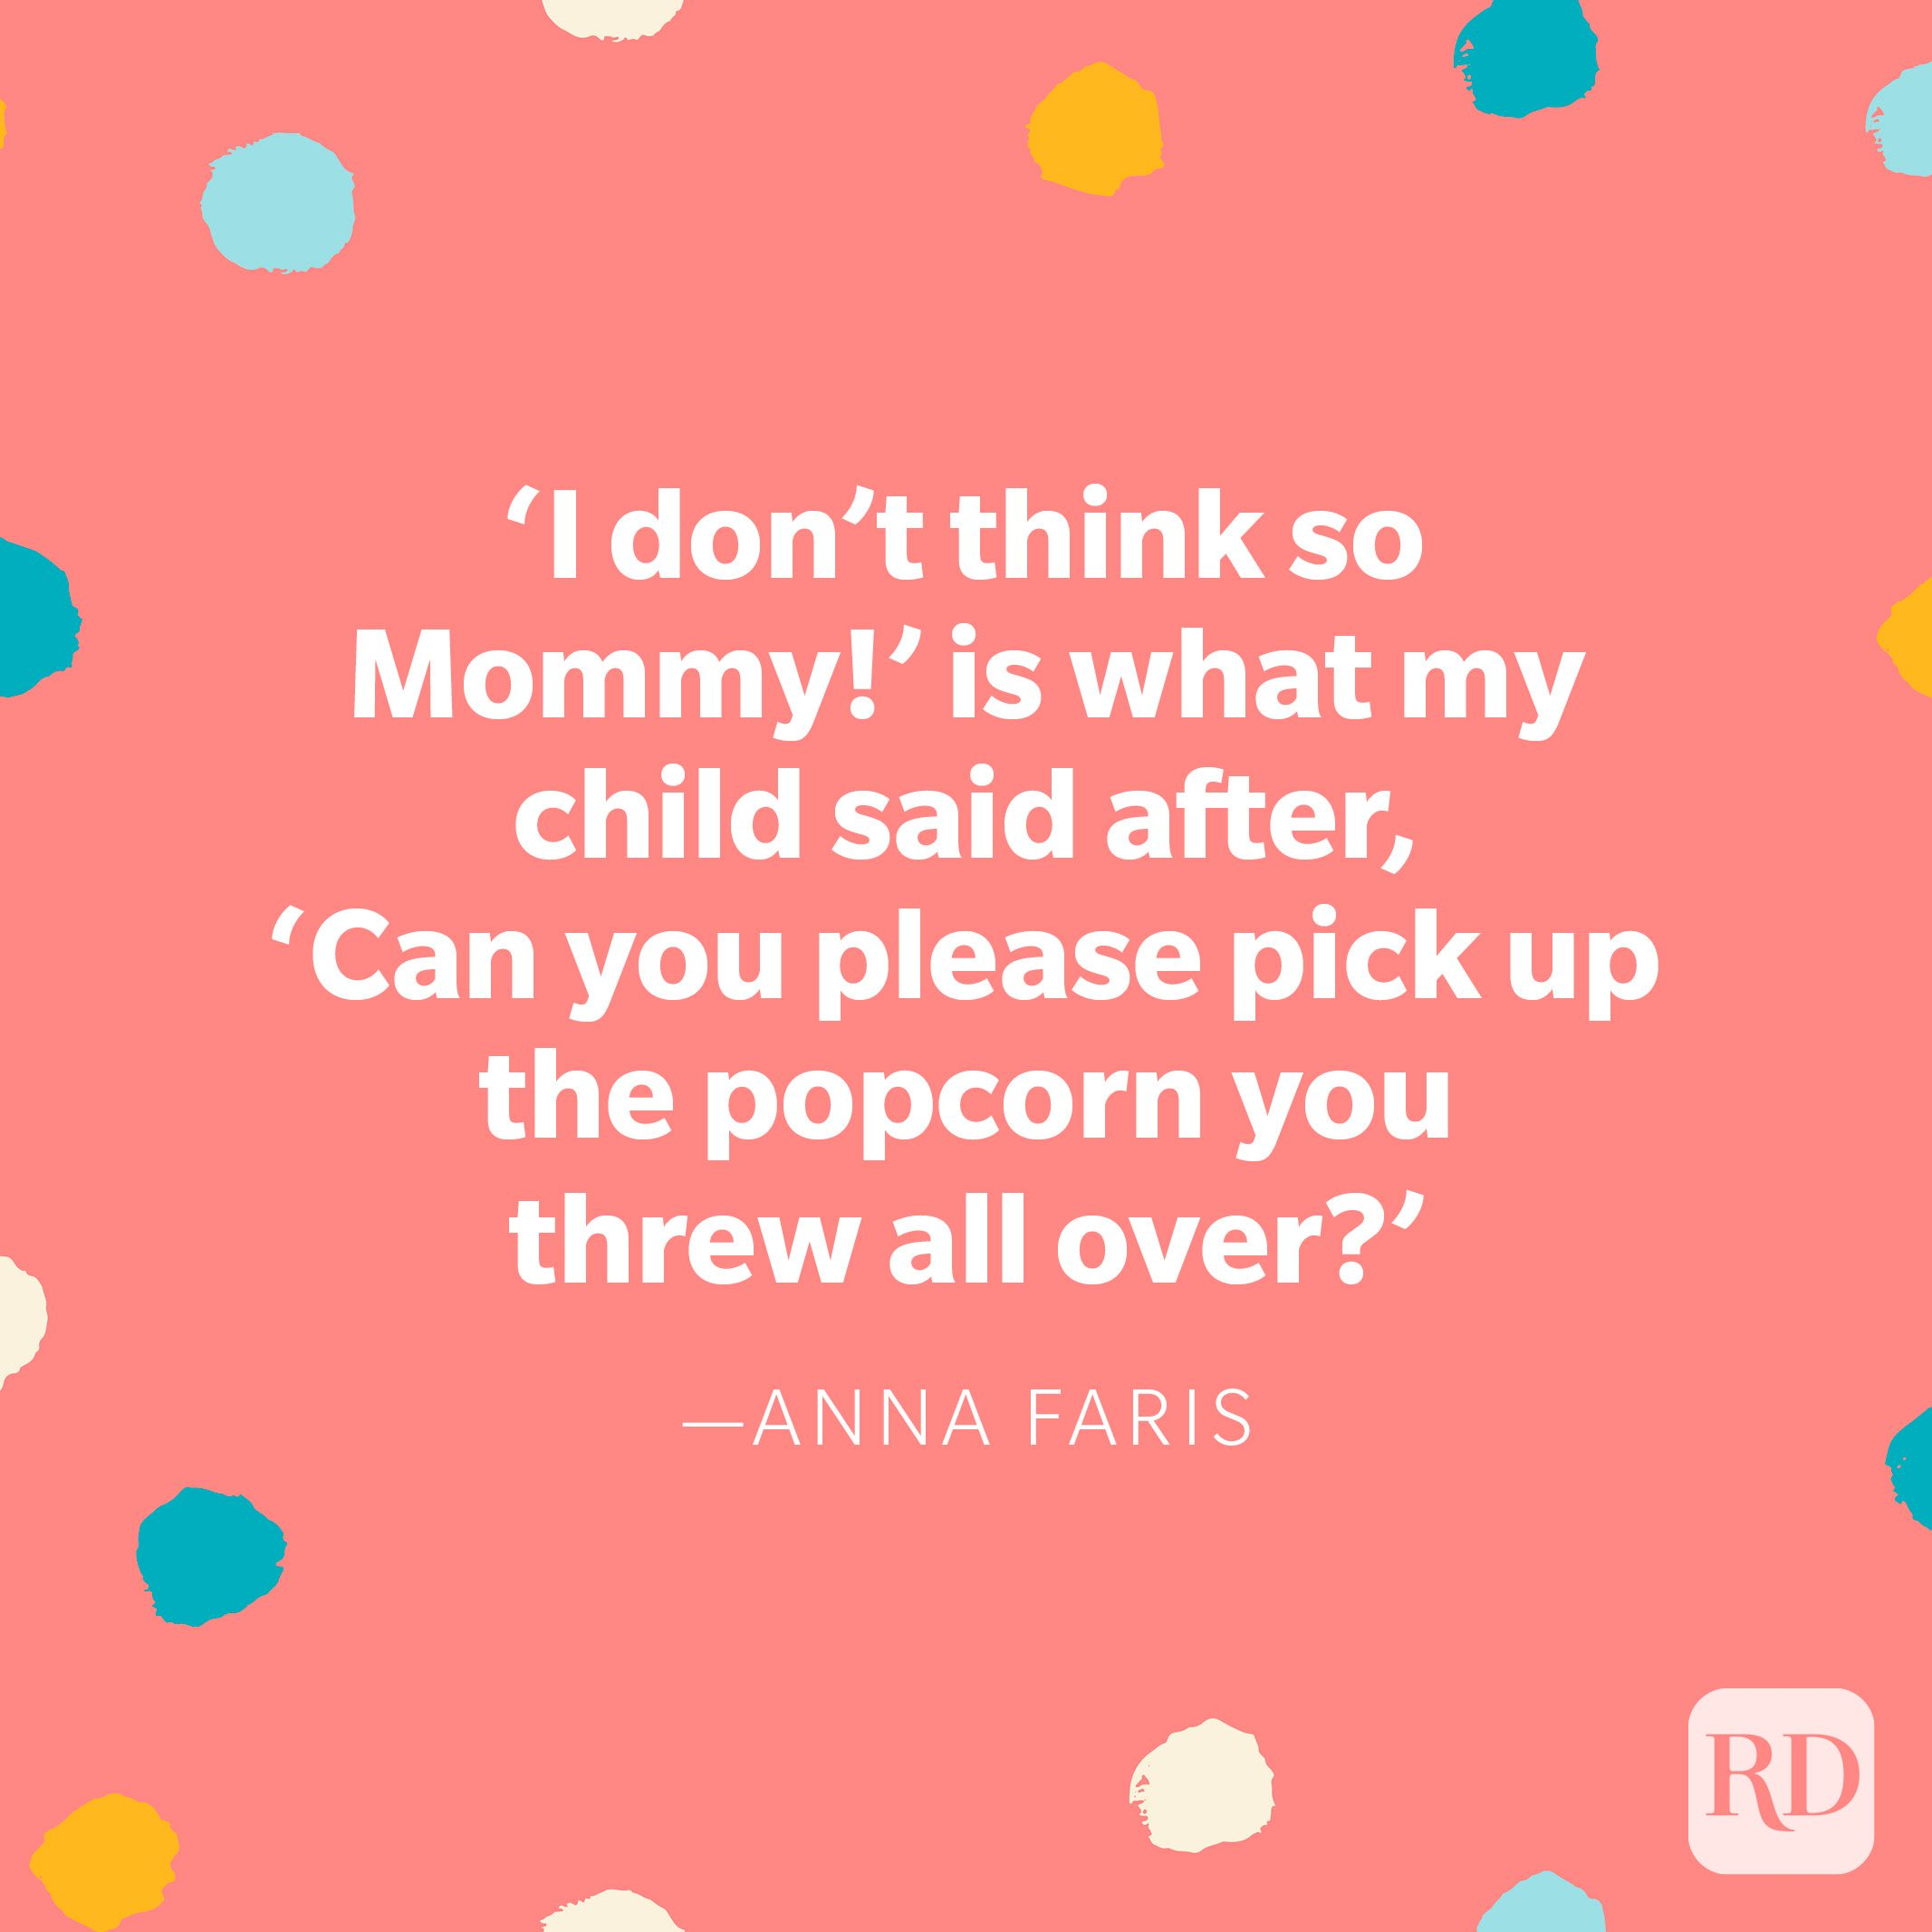 """""""'I don't think so Mommy!' is what my child said after, 'Can you please pick up the popcorn you threw all over?'"""" — Anna Faris"""